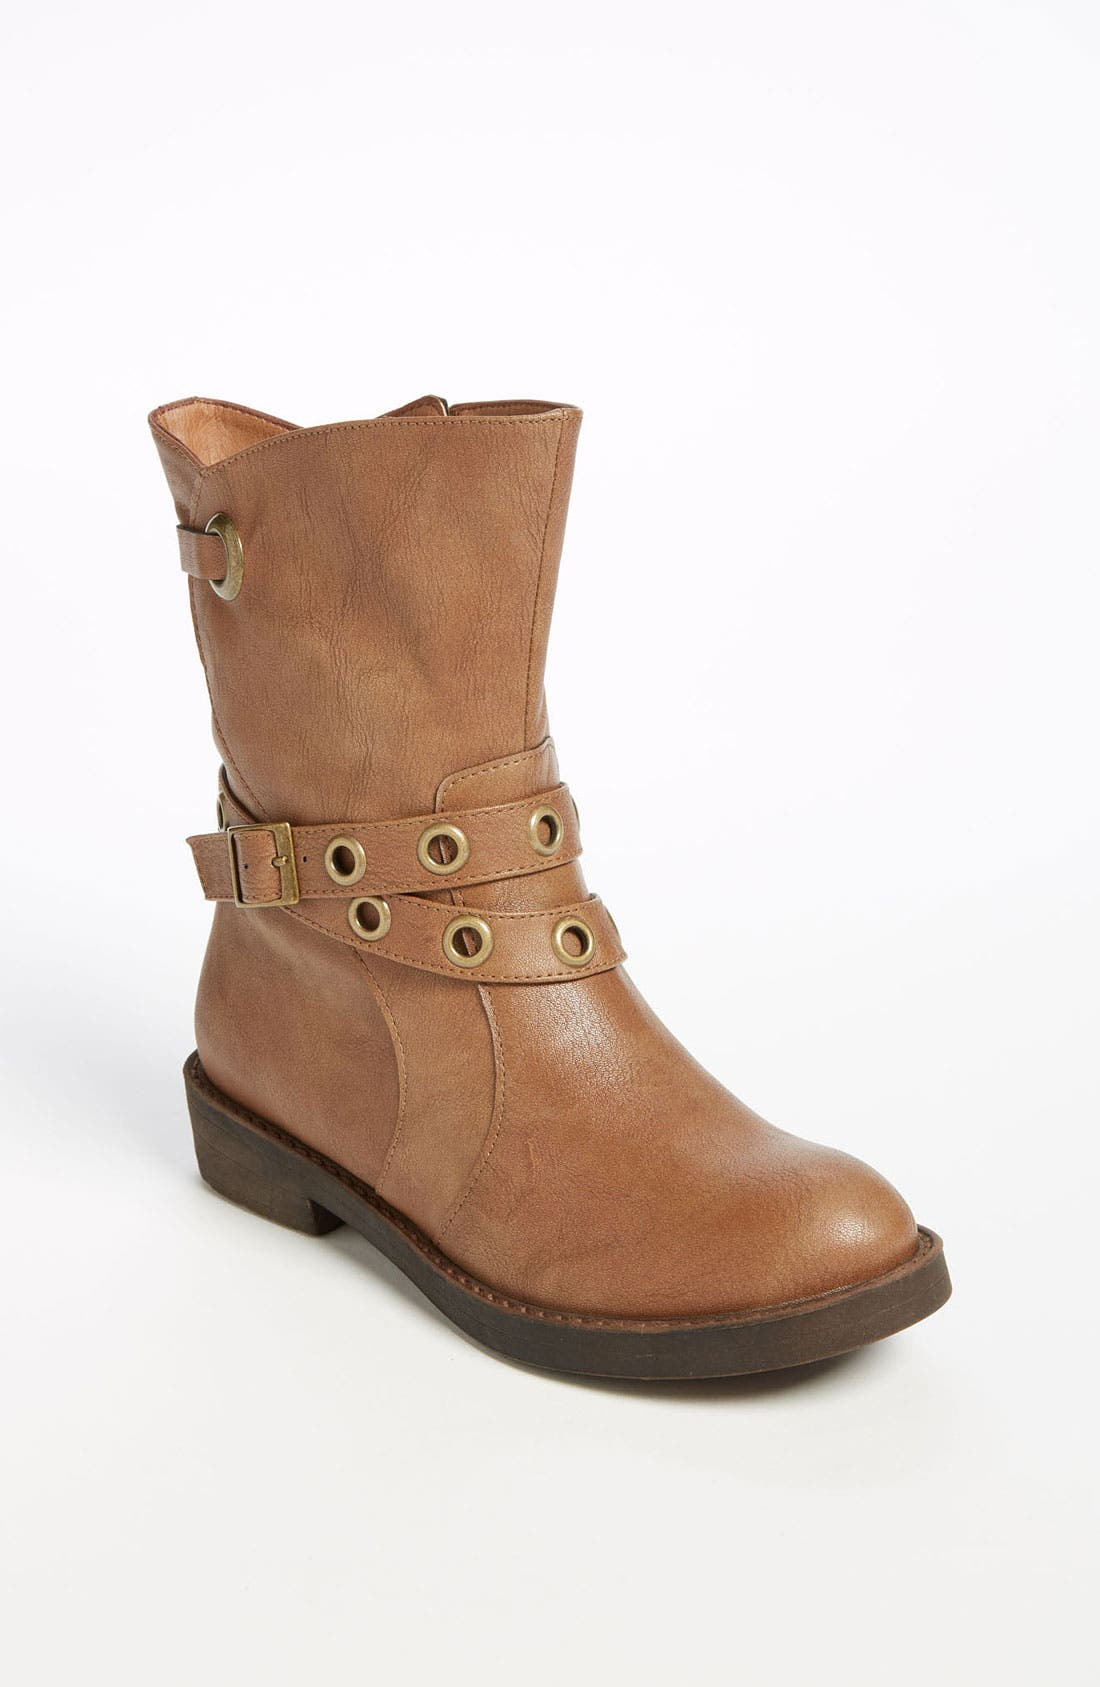 Alternate Image 1 Selected - Jessica Simpson 'Ellice' Boot (Little Kid & Big Kid) (Online Only)